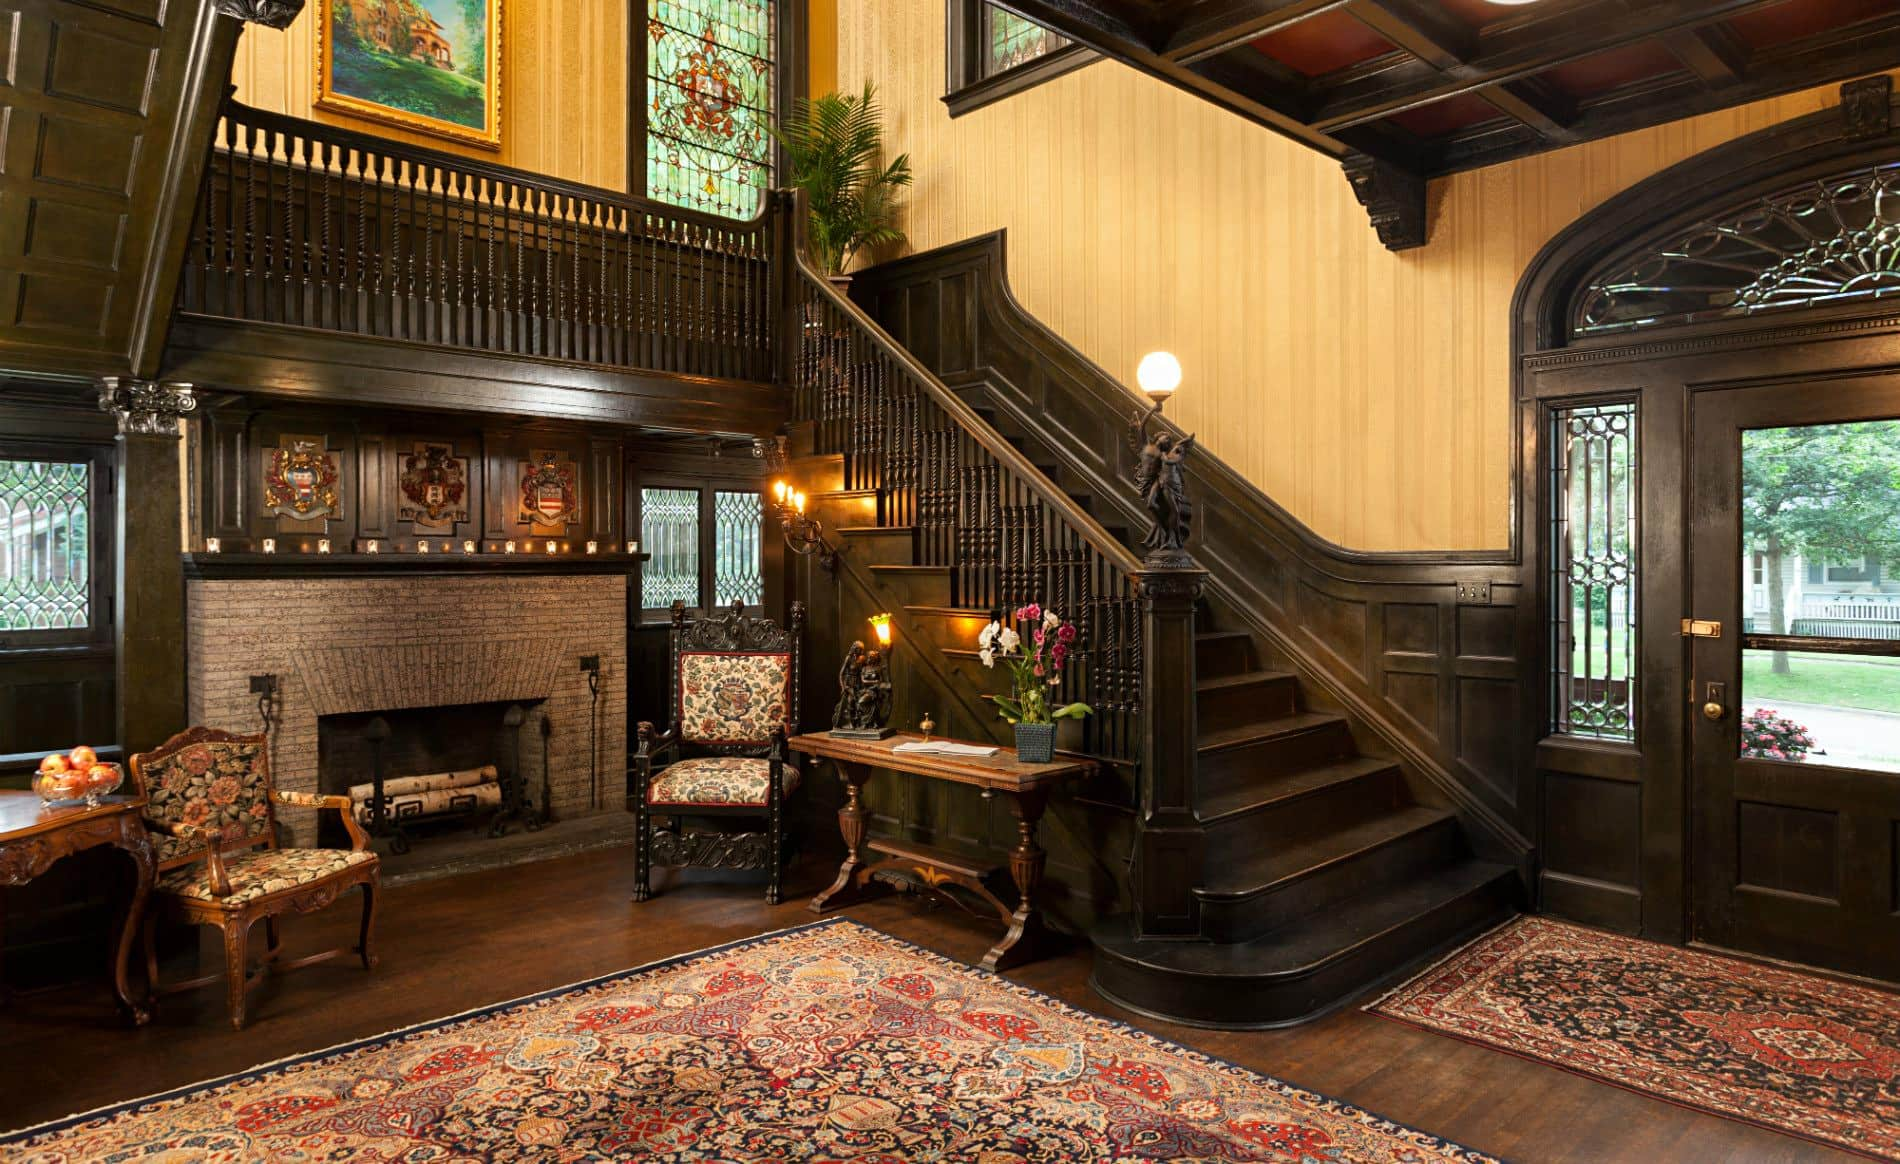 Common area with dark stained woodwork and stairs, a fireplace flanked by two chairs and two leaded glass windows